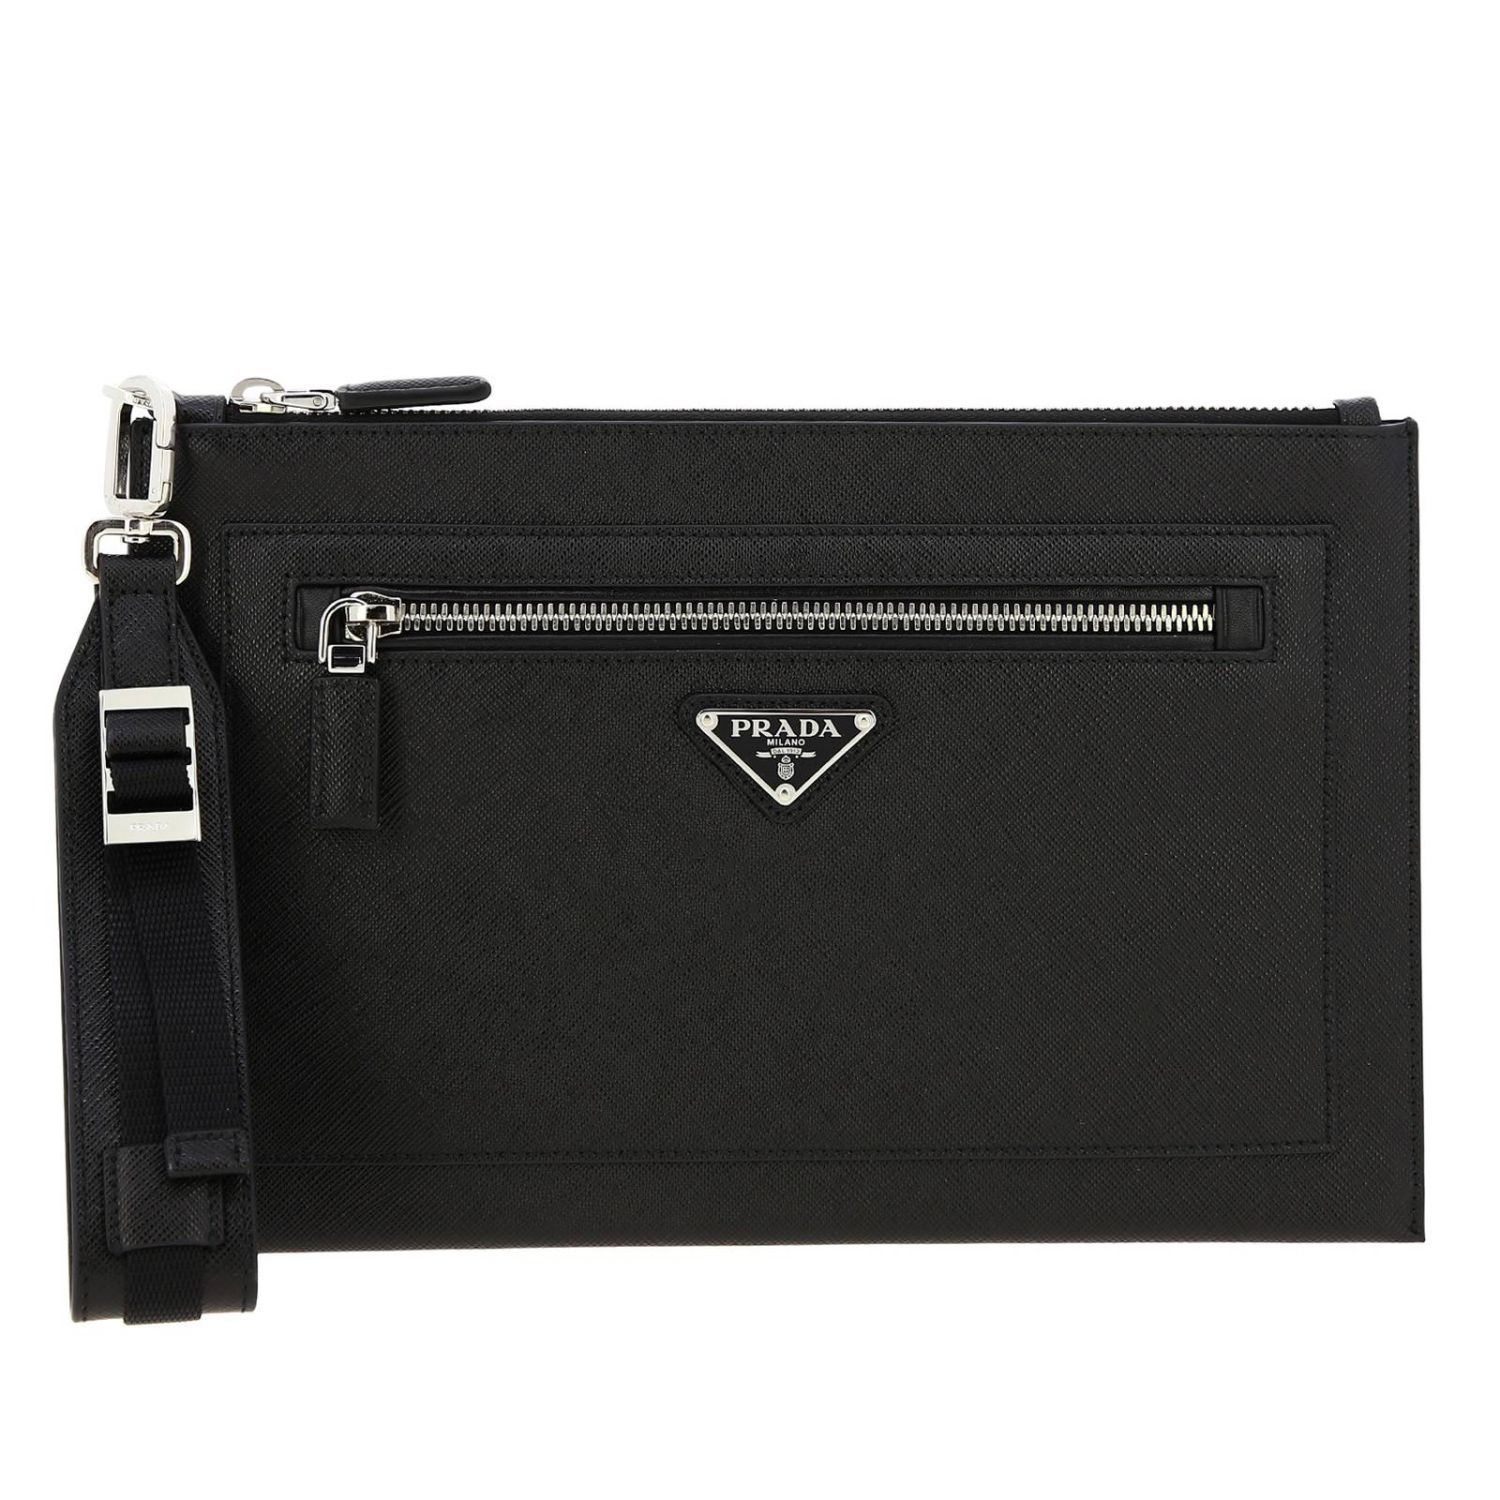 Briefcase Prada: Prada saffiano leather clutch bag full zip with logo black 1